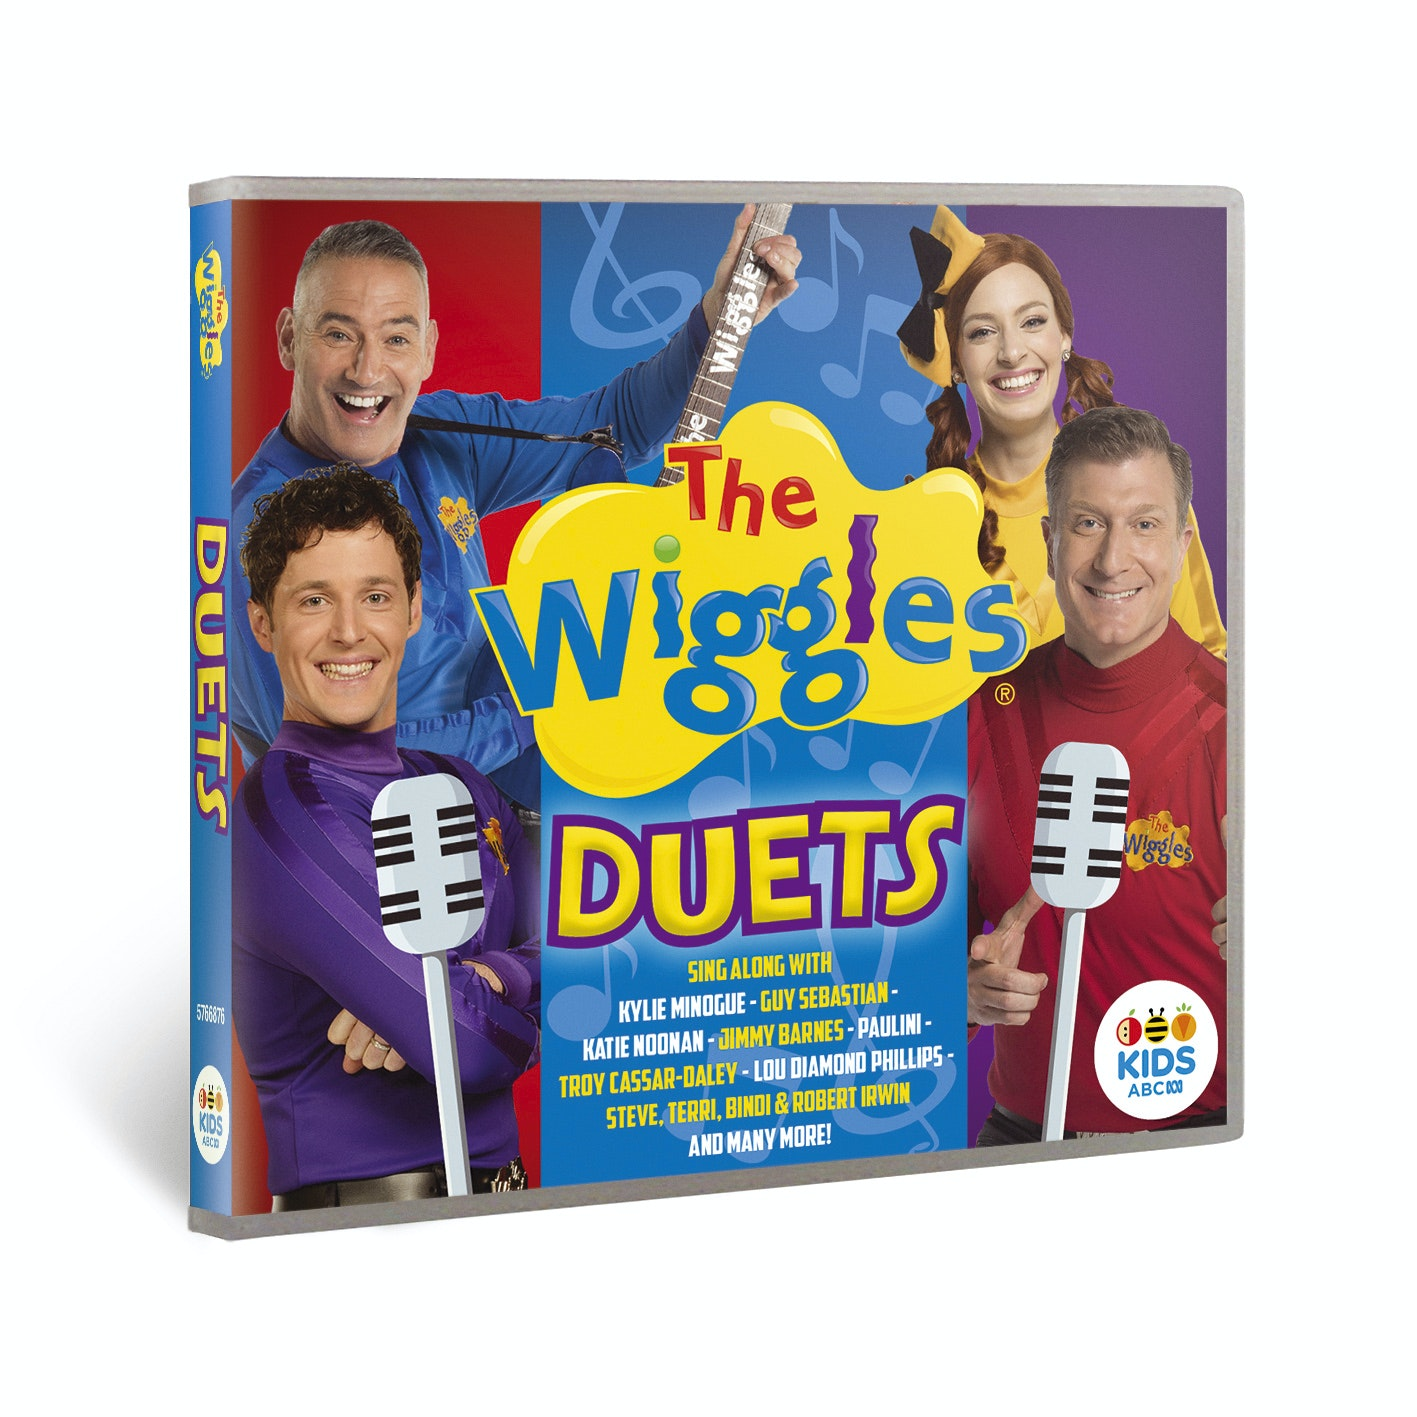 The Wiggles: Duets DVD and CD pack   sweepstakes